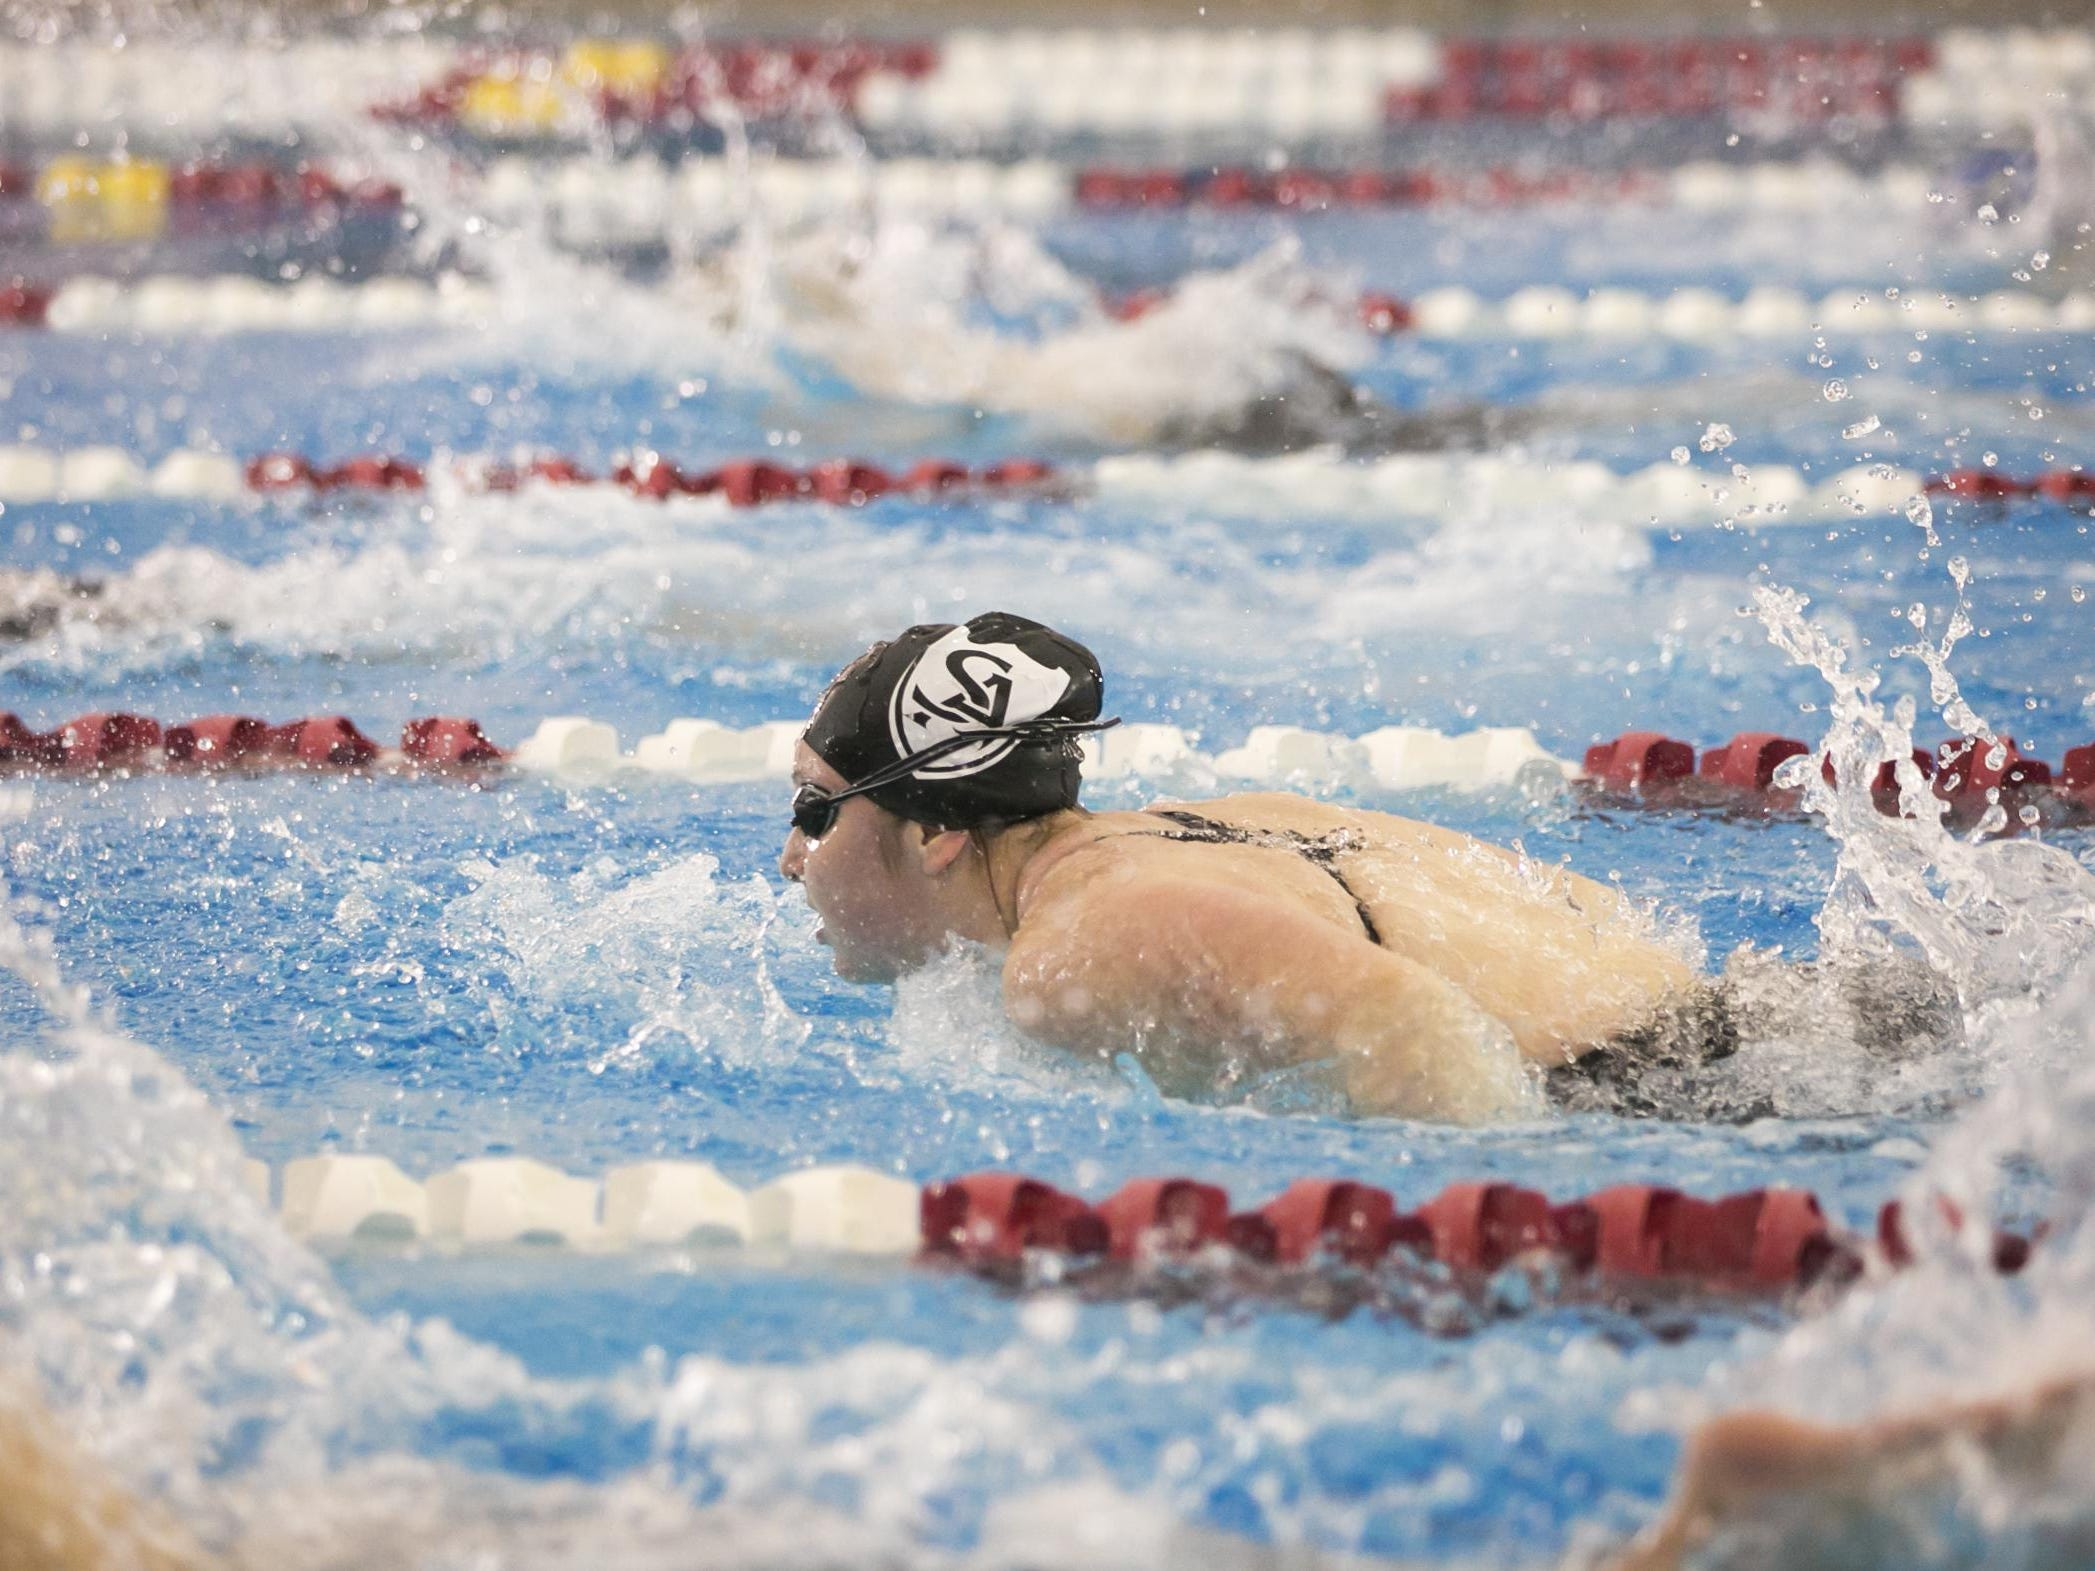 Salem Academy's Kiera Supple swims the girls 200 individual medley at the OSAA Swimming State Championships at Mount Hood Community College on Saturday, Feb. 20, 2016.